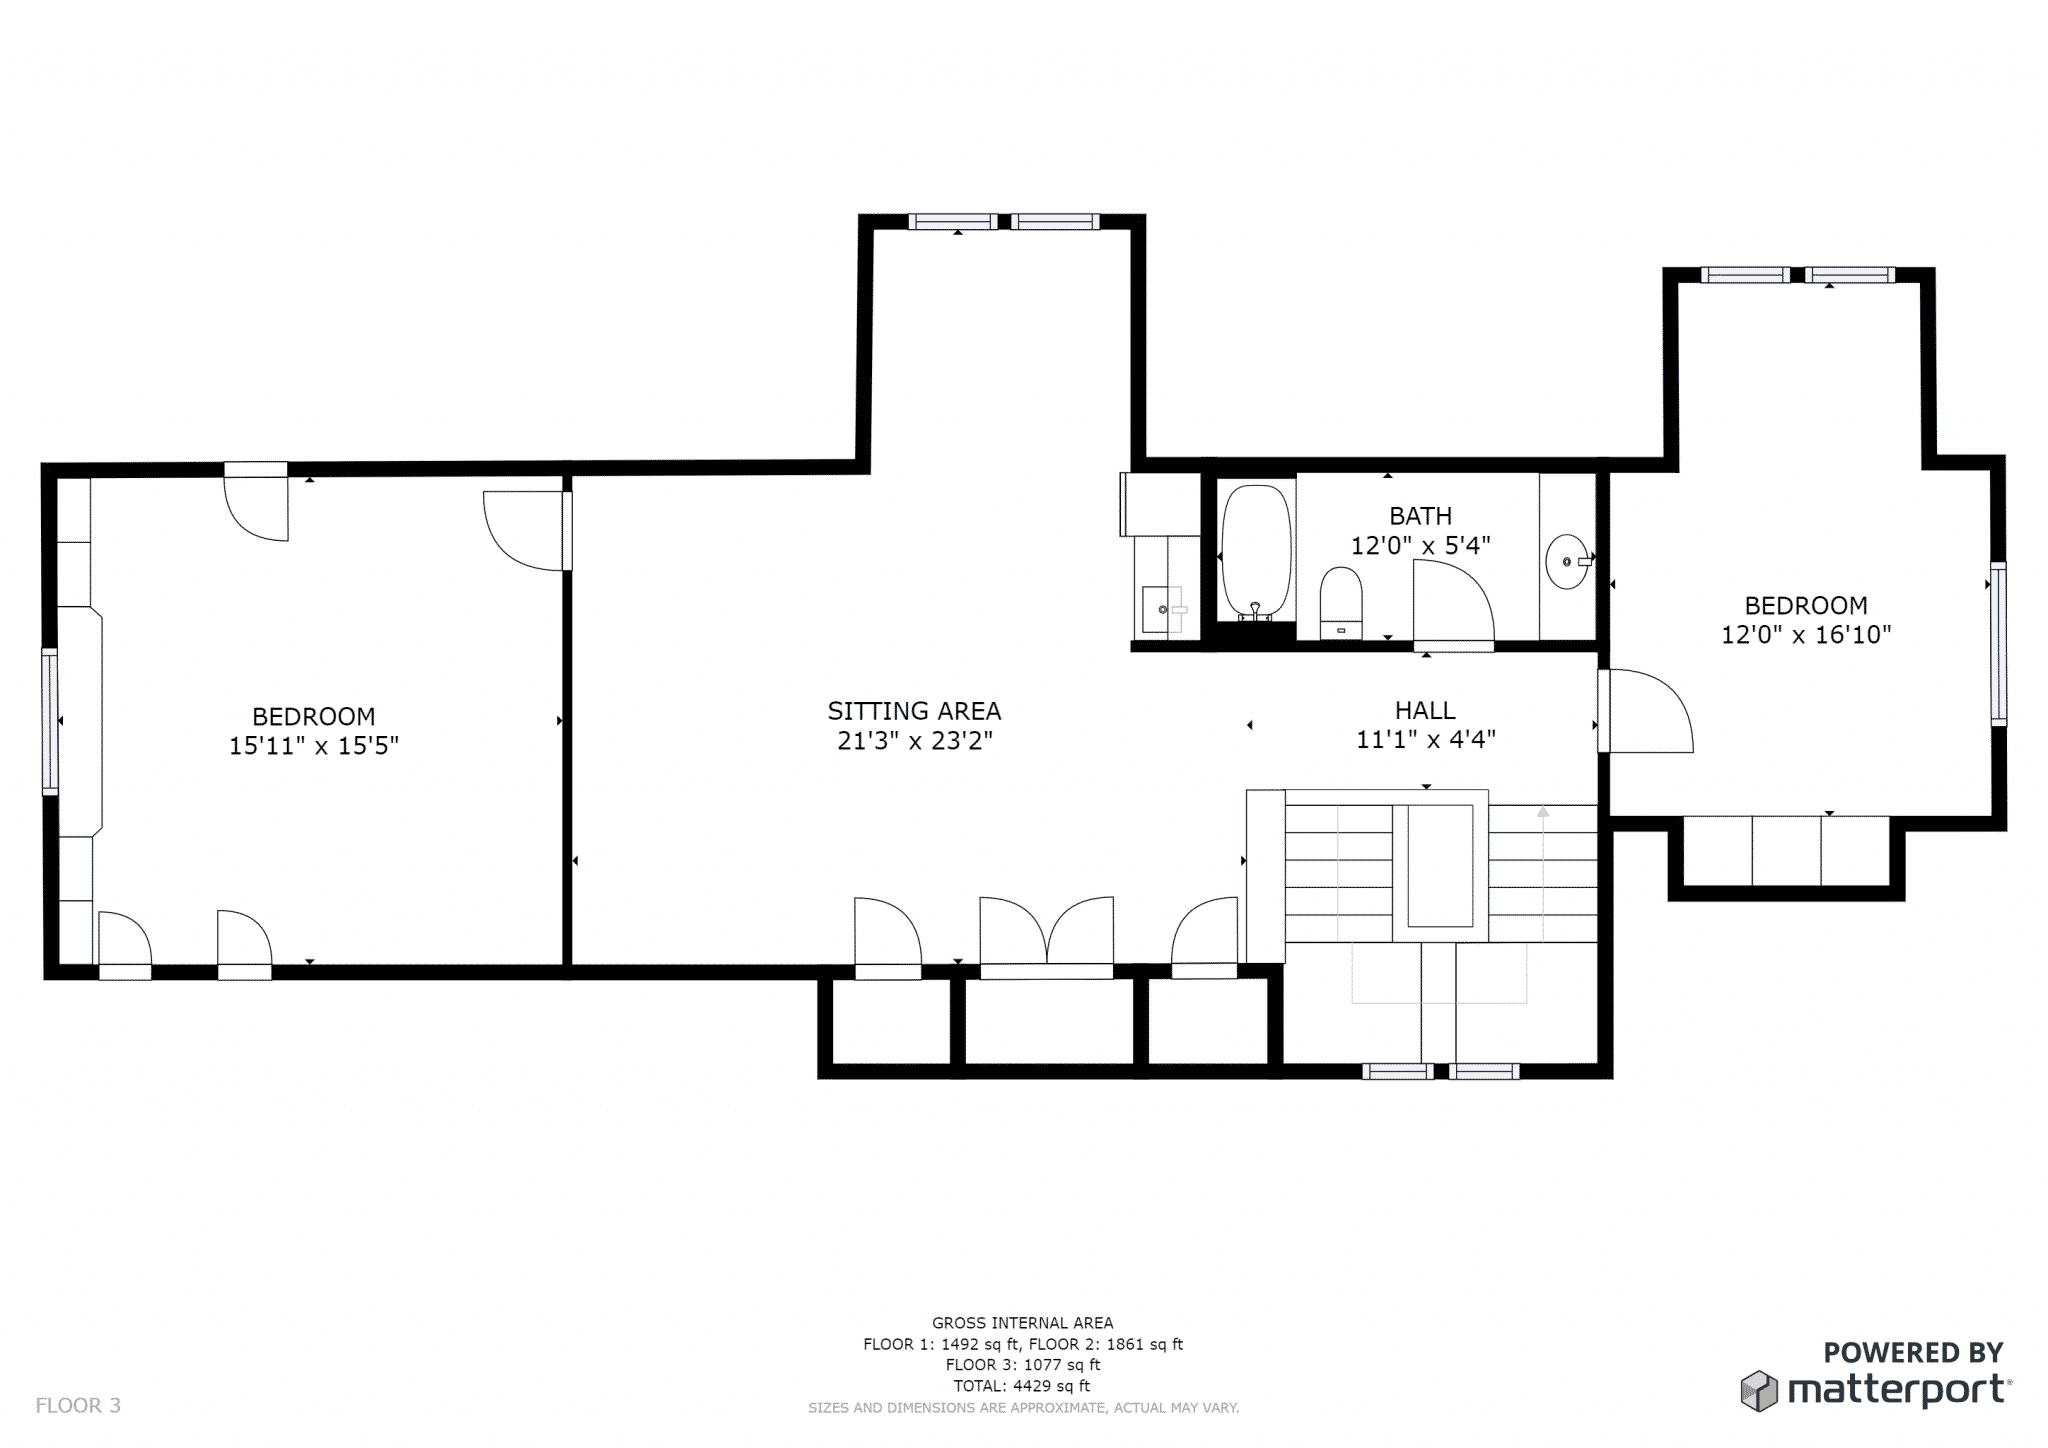 Matthew FloorPlan 3